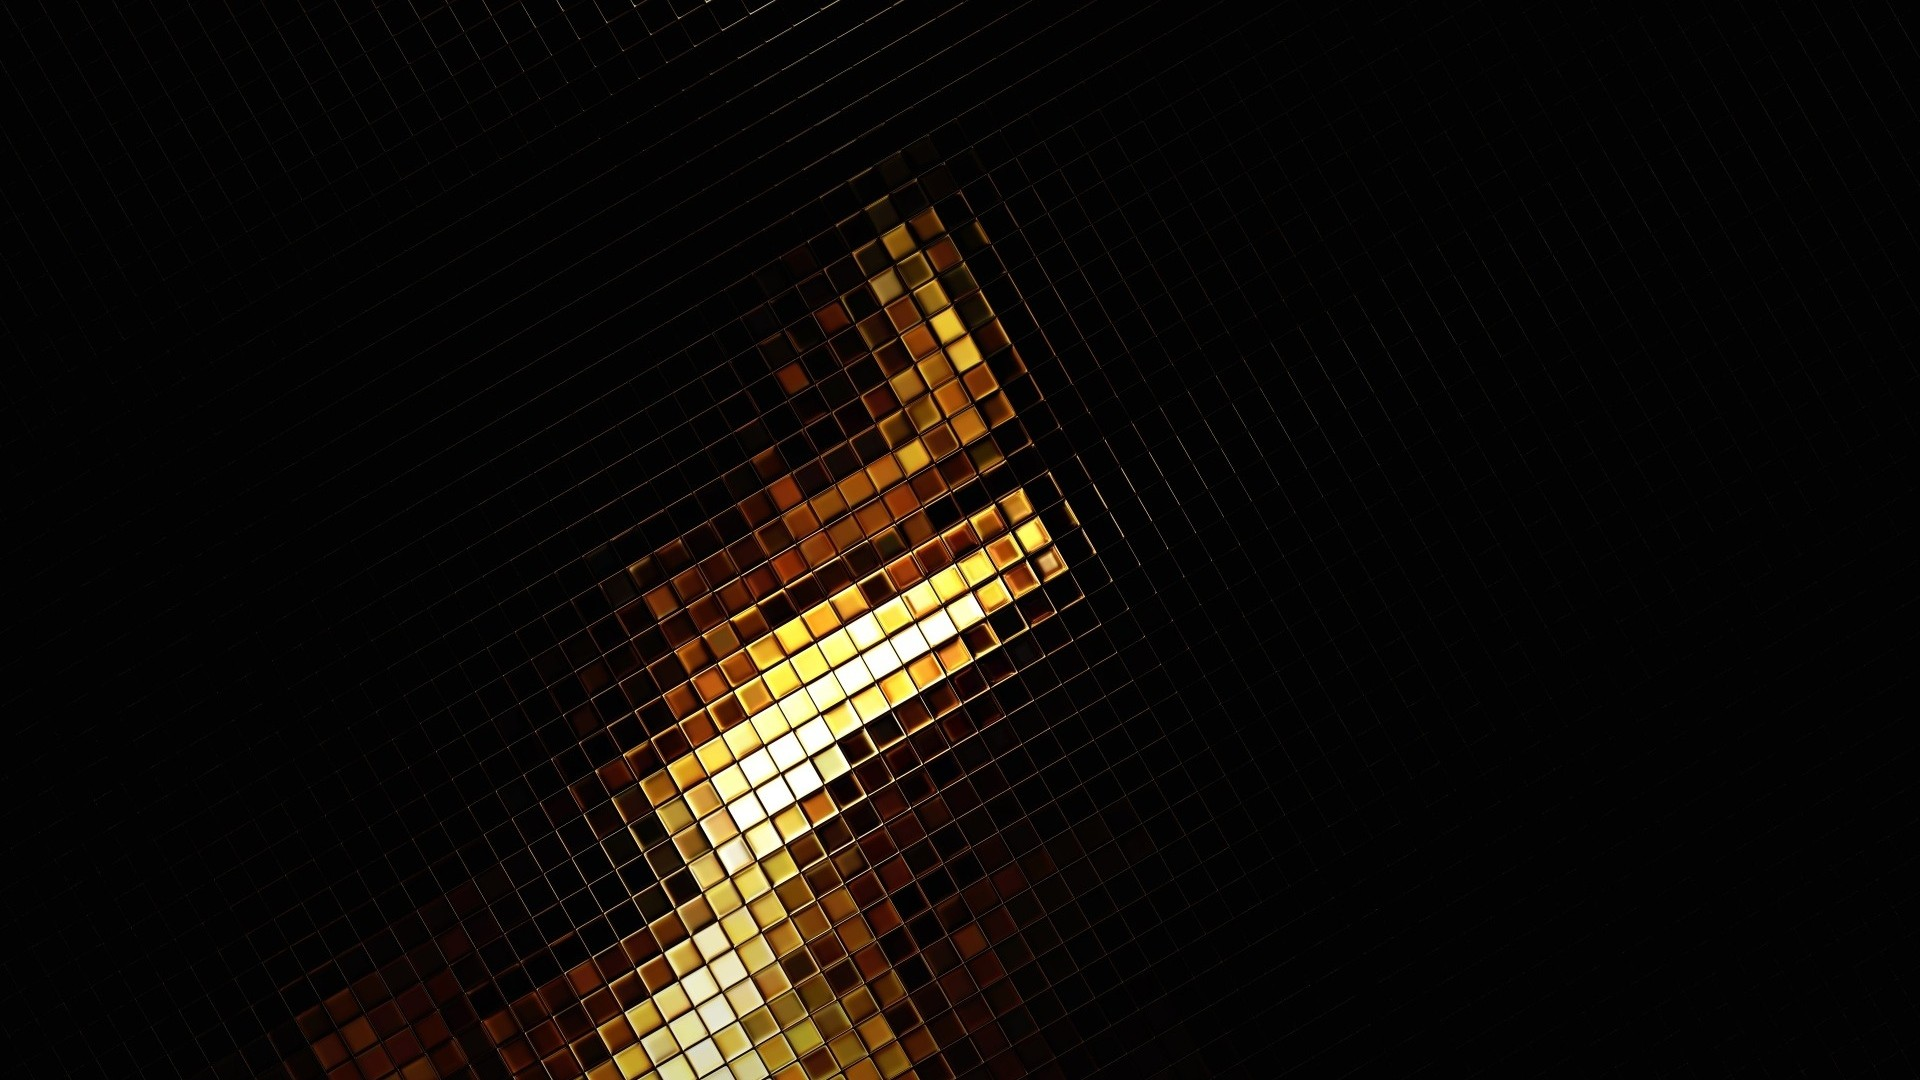 gold mirror black background download awesome #5253